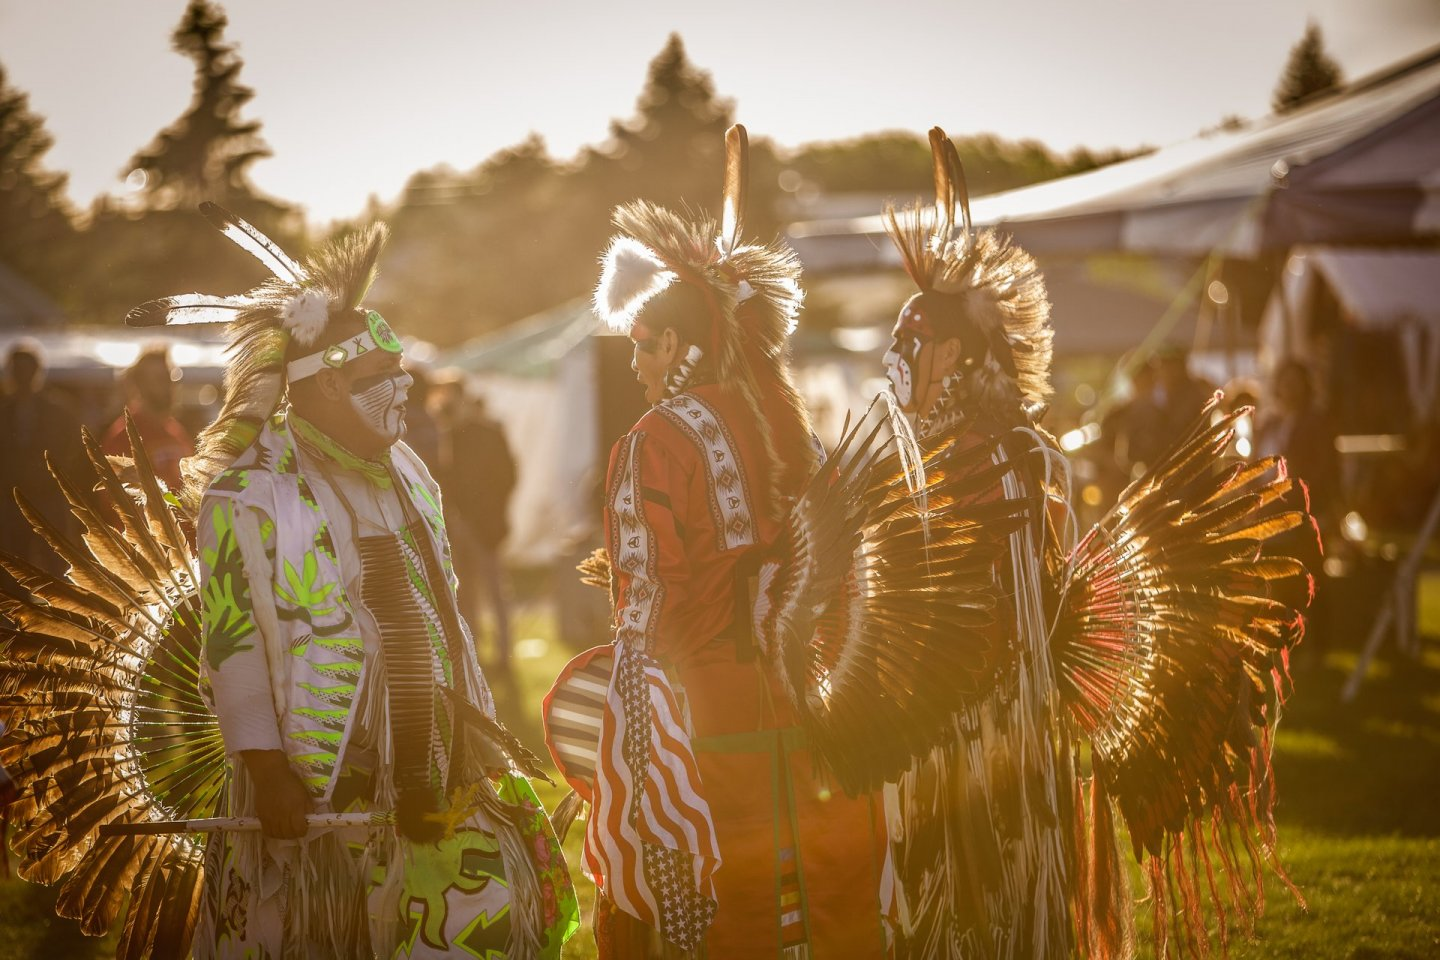 Your Citizenship May Depend on Your knowledge of the Indigenous People